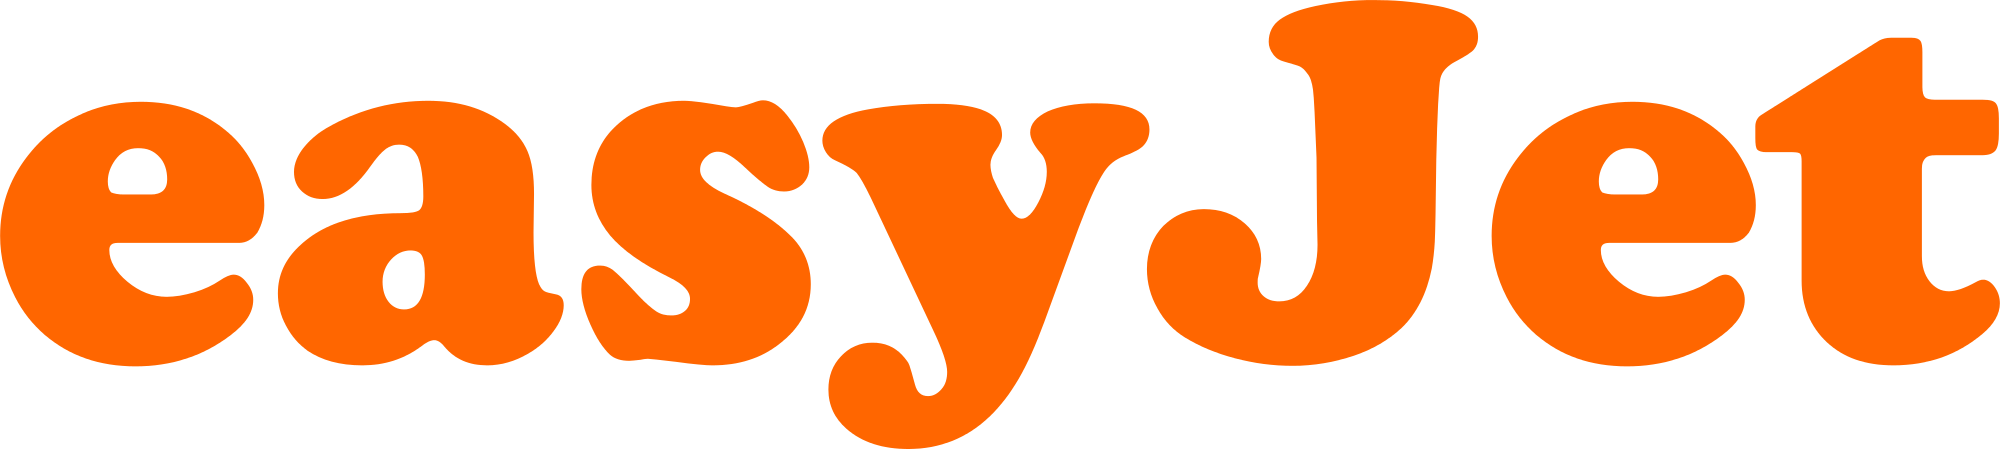 EASYJET Airline Company Limited